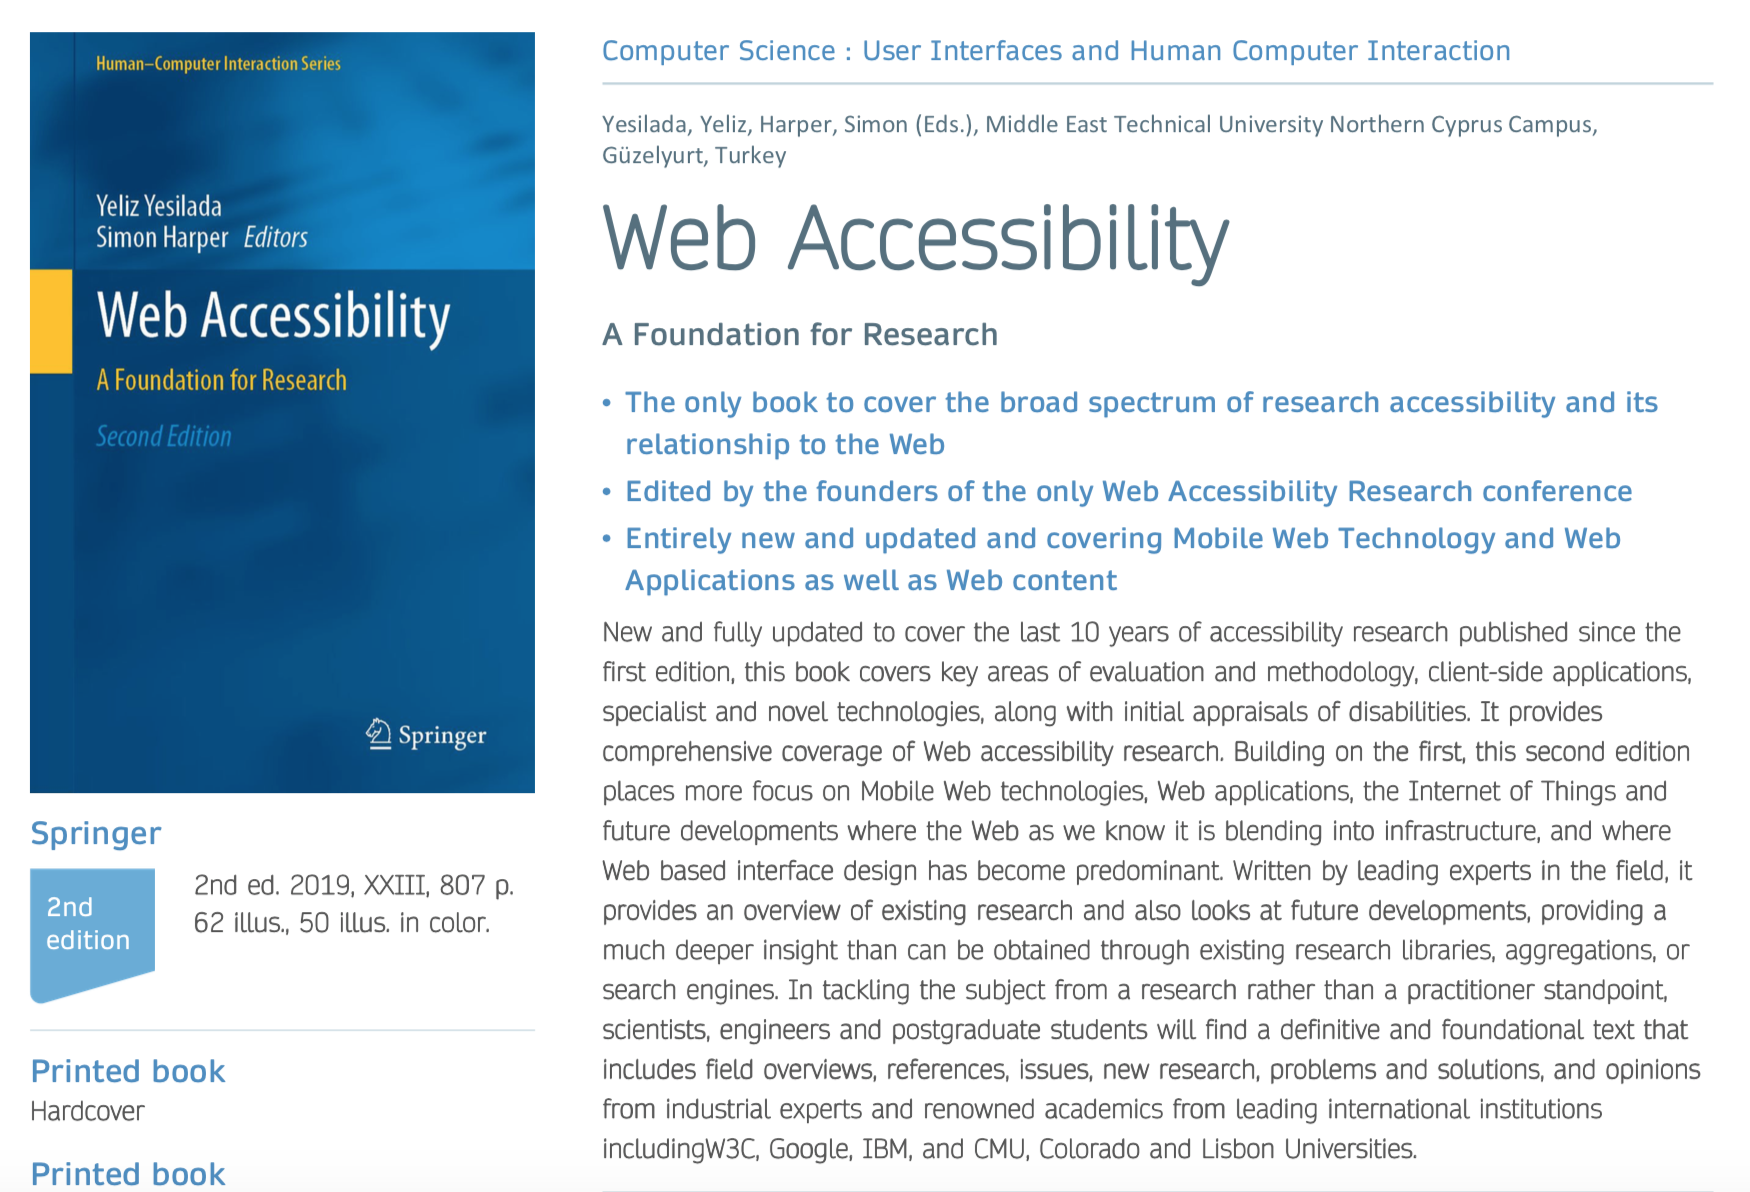 Web Accessibility Second Edition